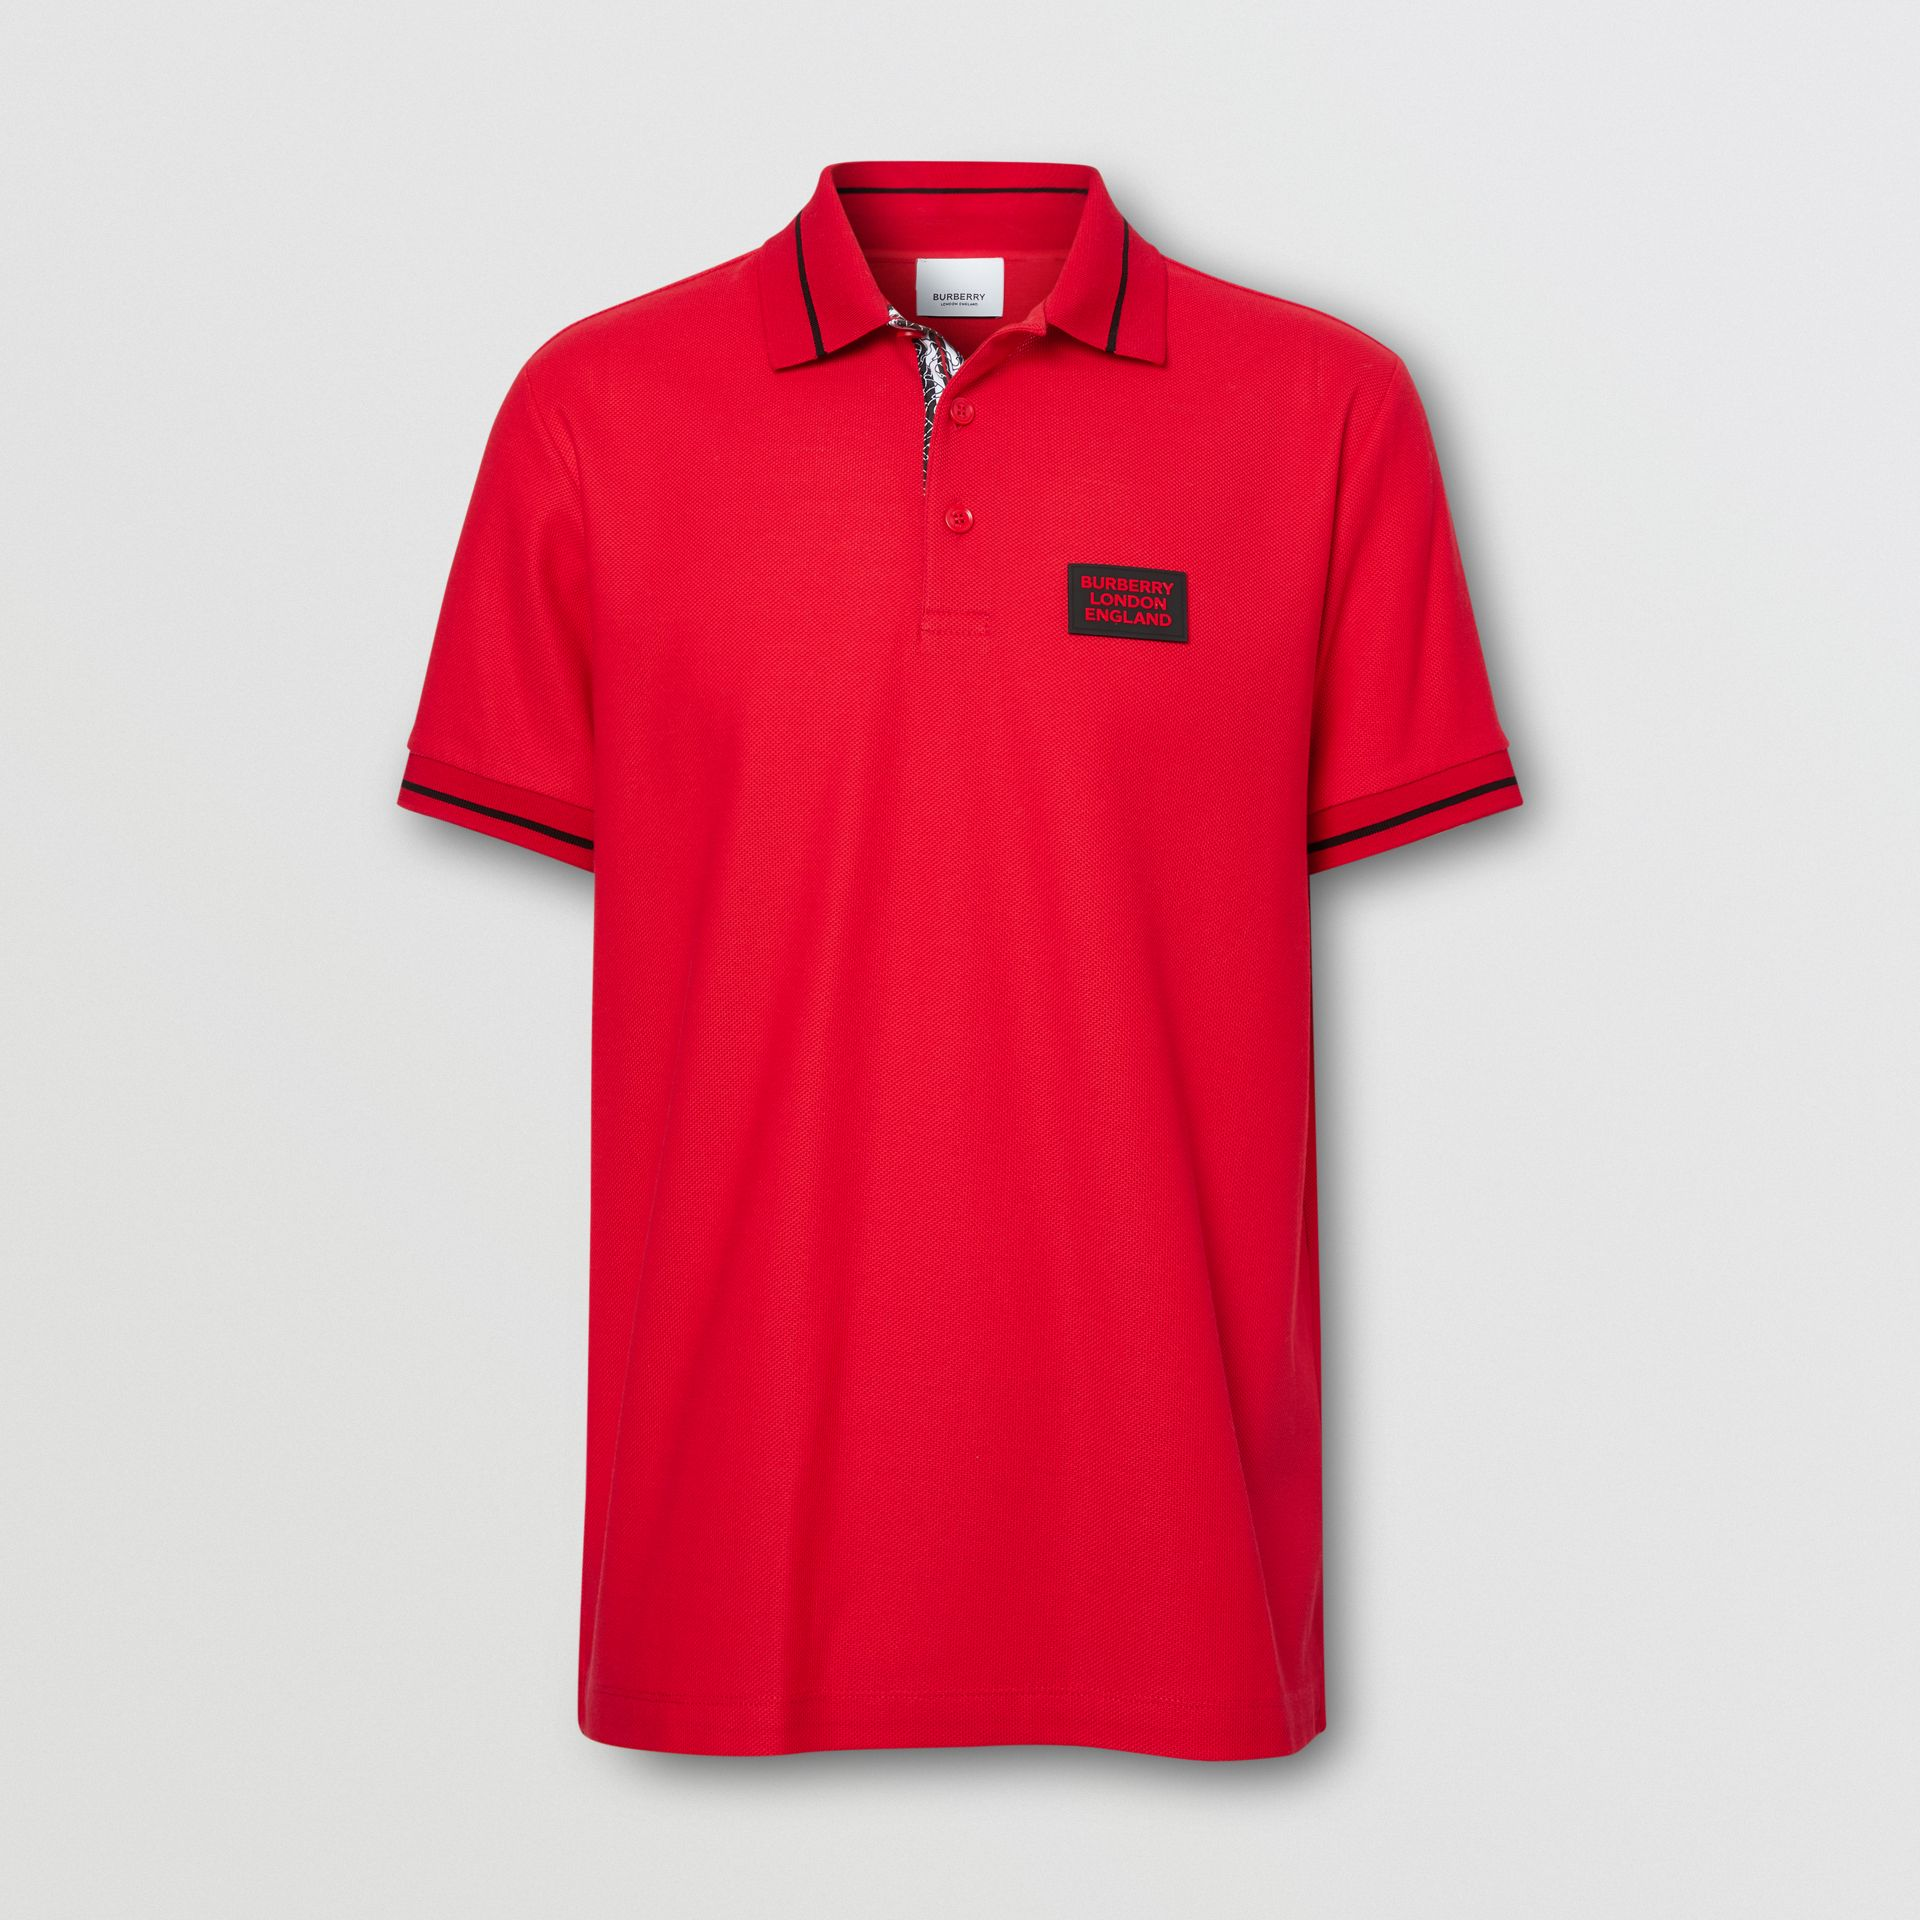 Logo Appliqué Cotton Piqué Polo Shirt in Bright Red - Men | Burberry - gallery image 3